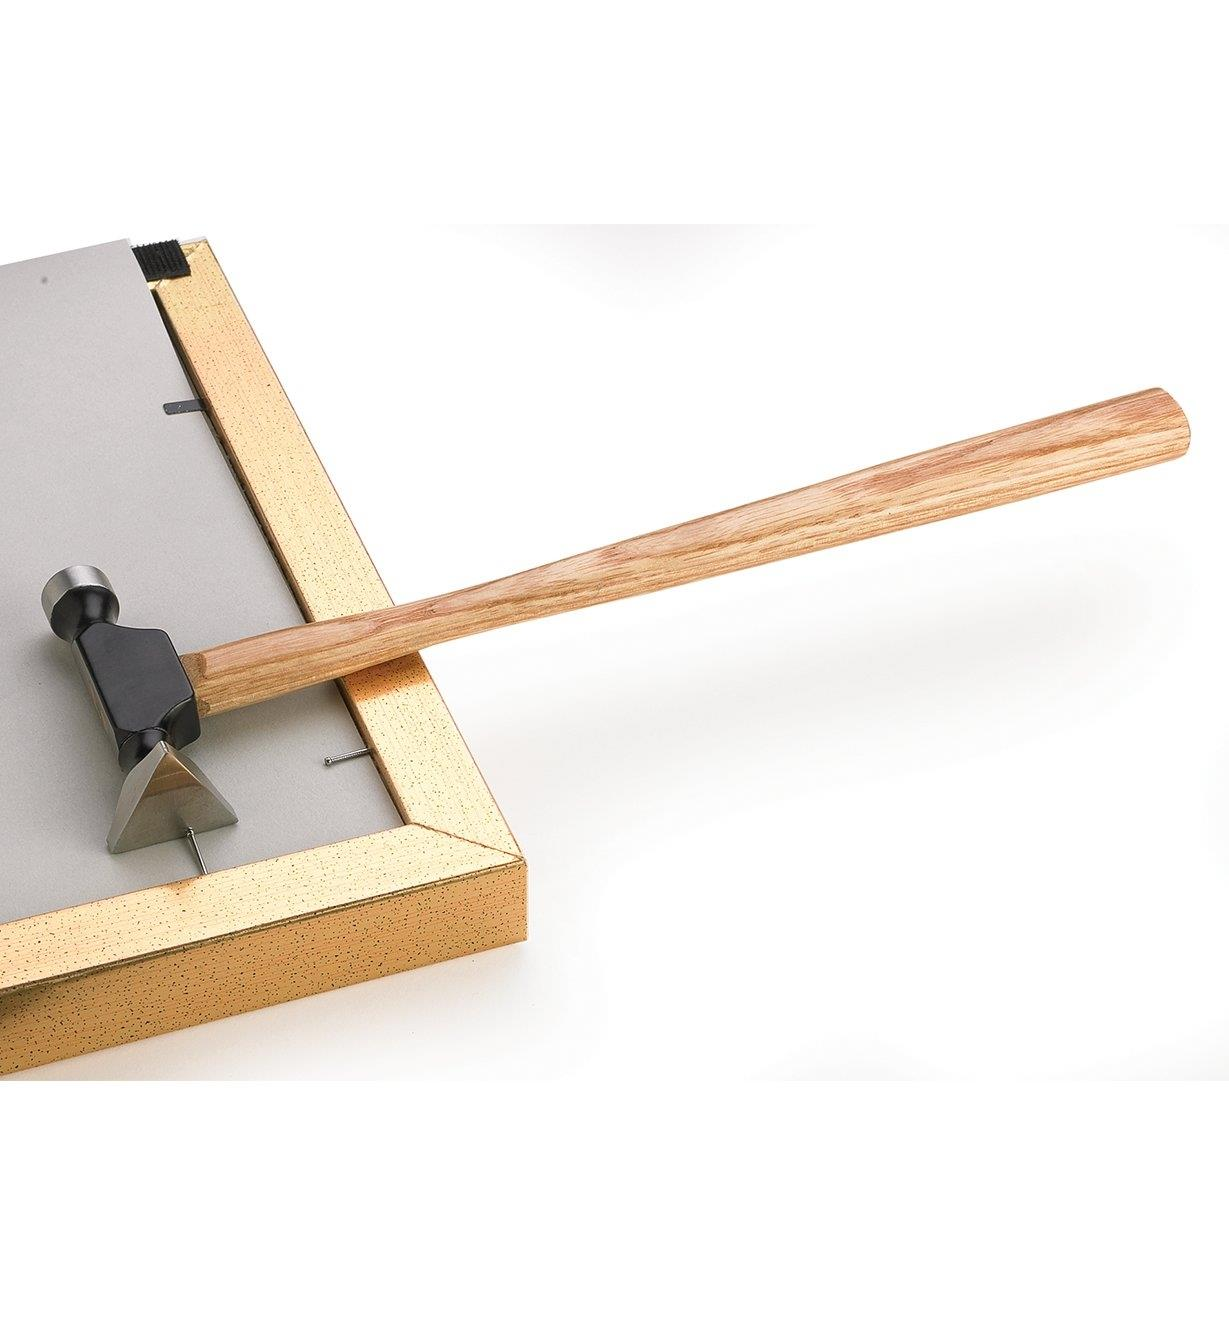 05K9923 - Picture Framing/Glazier's Hammer